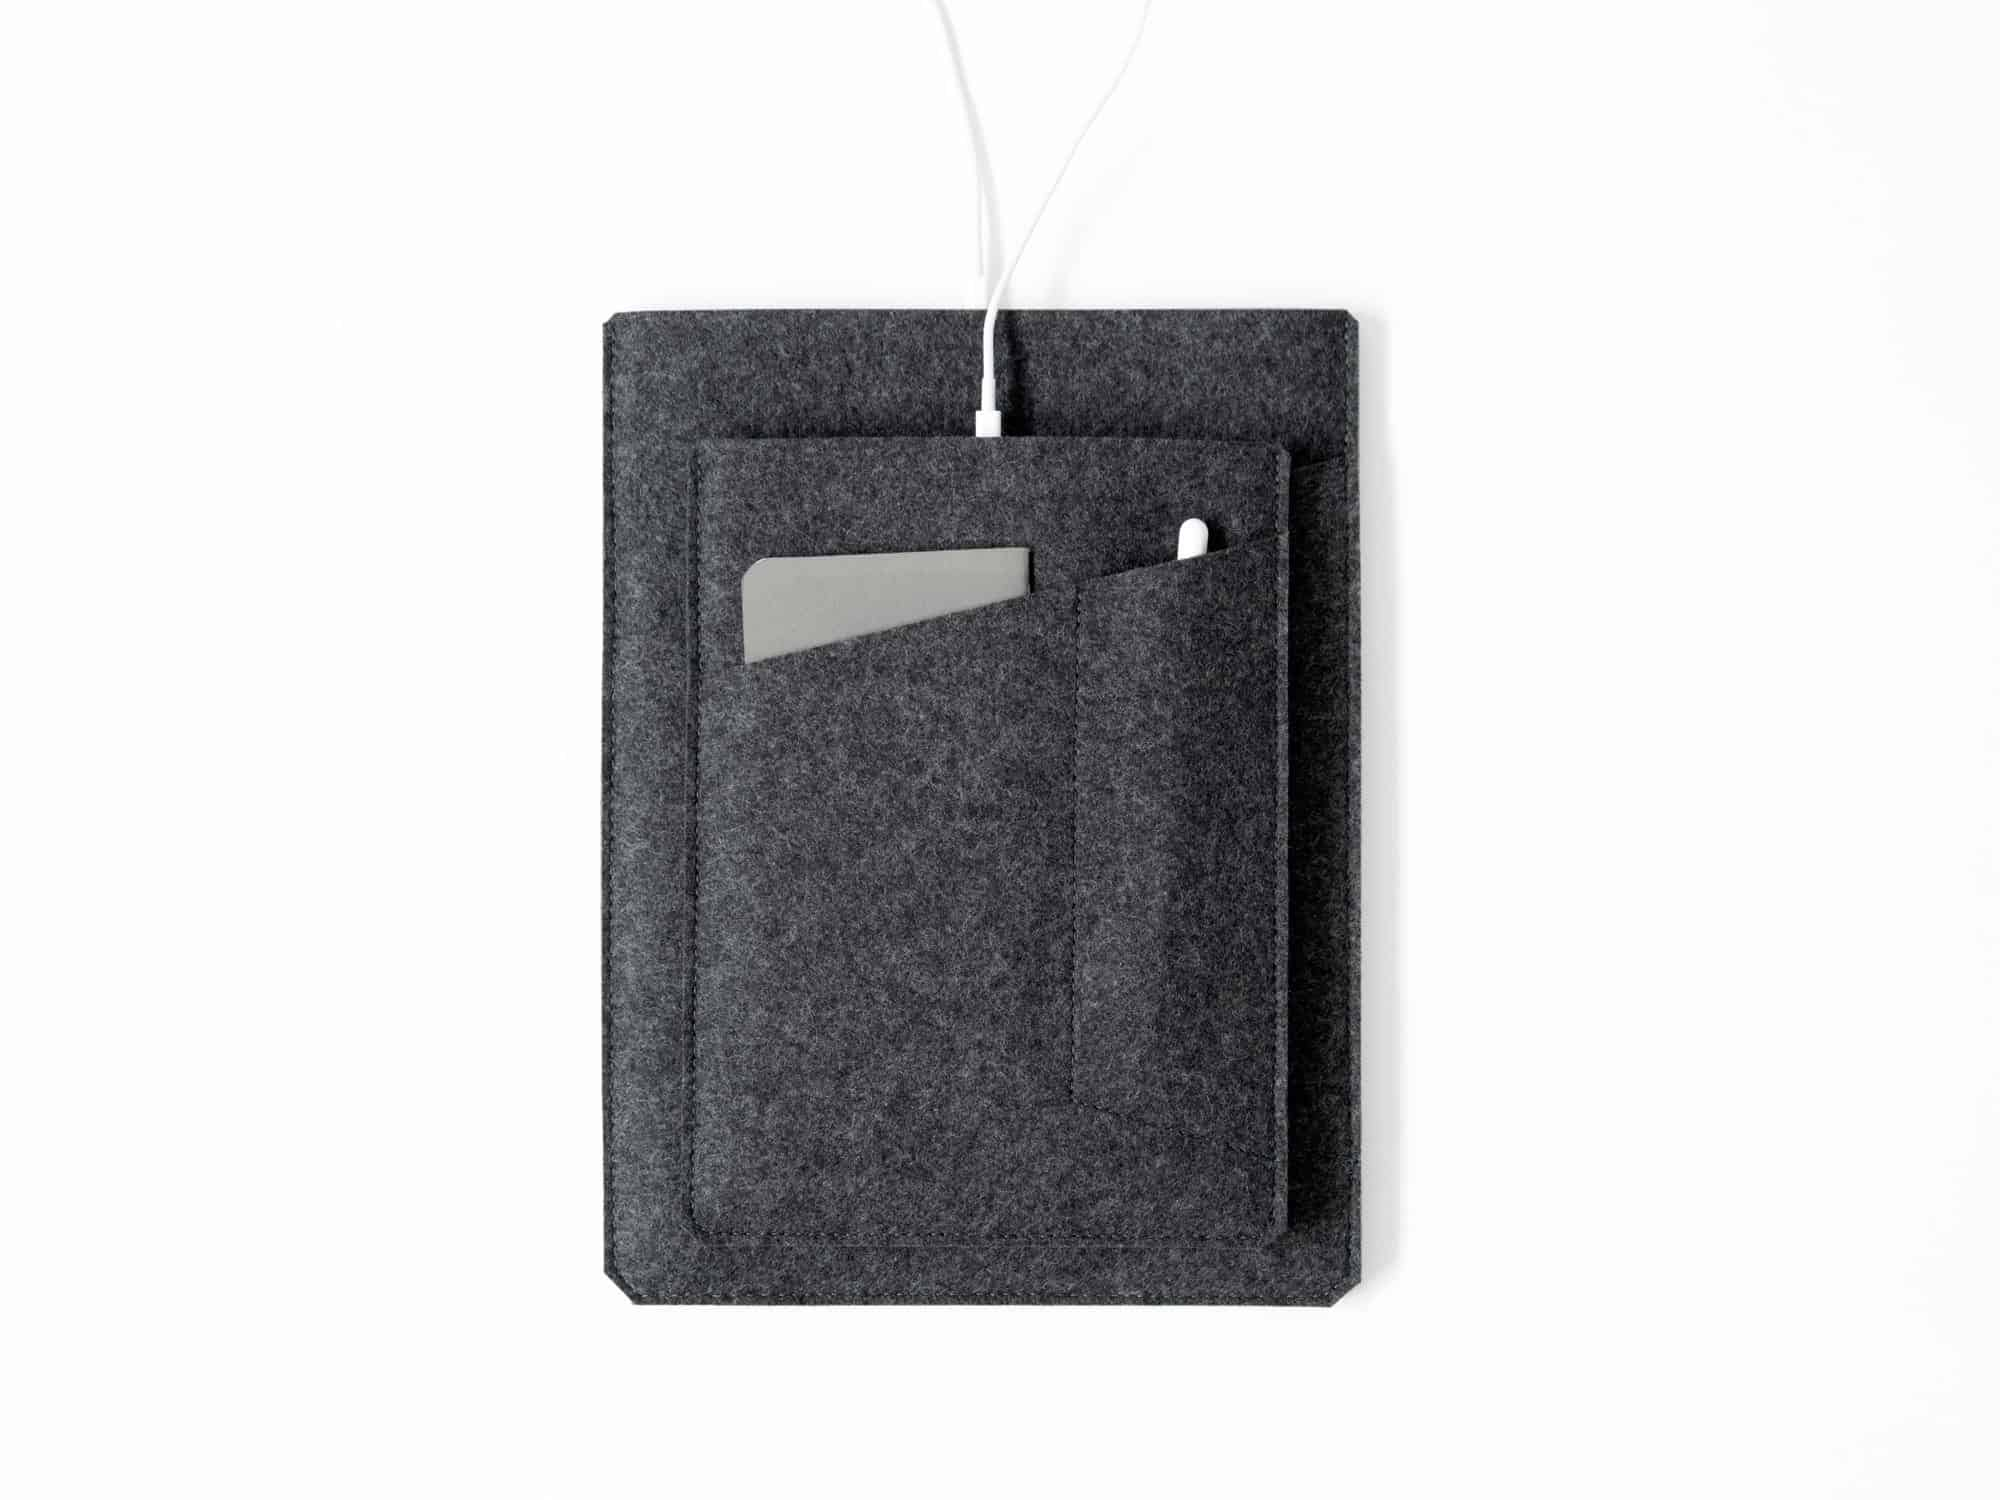 low priced 3933c e8d0f Best iPad cases for every type of user | Cult of Mac